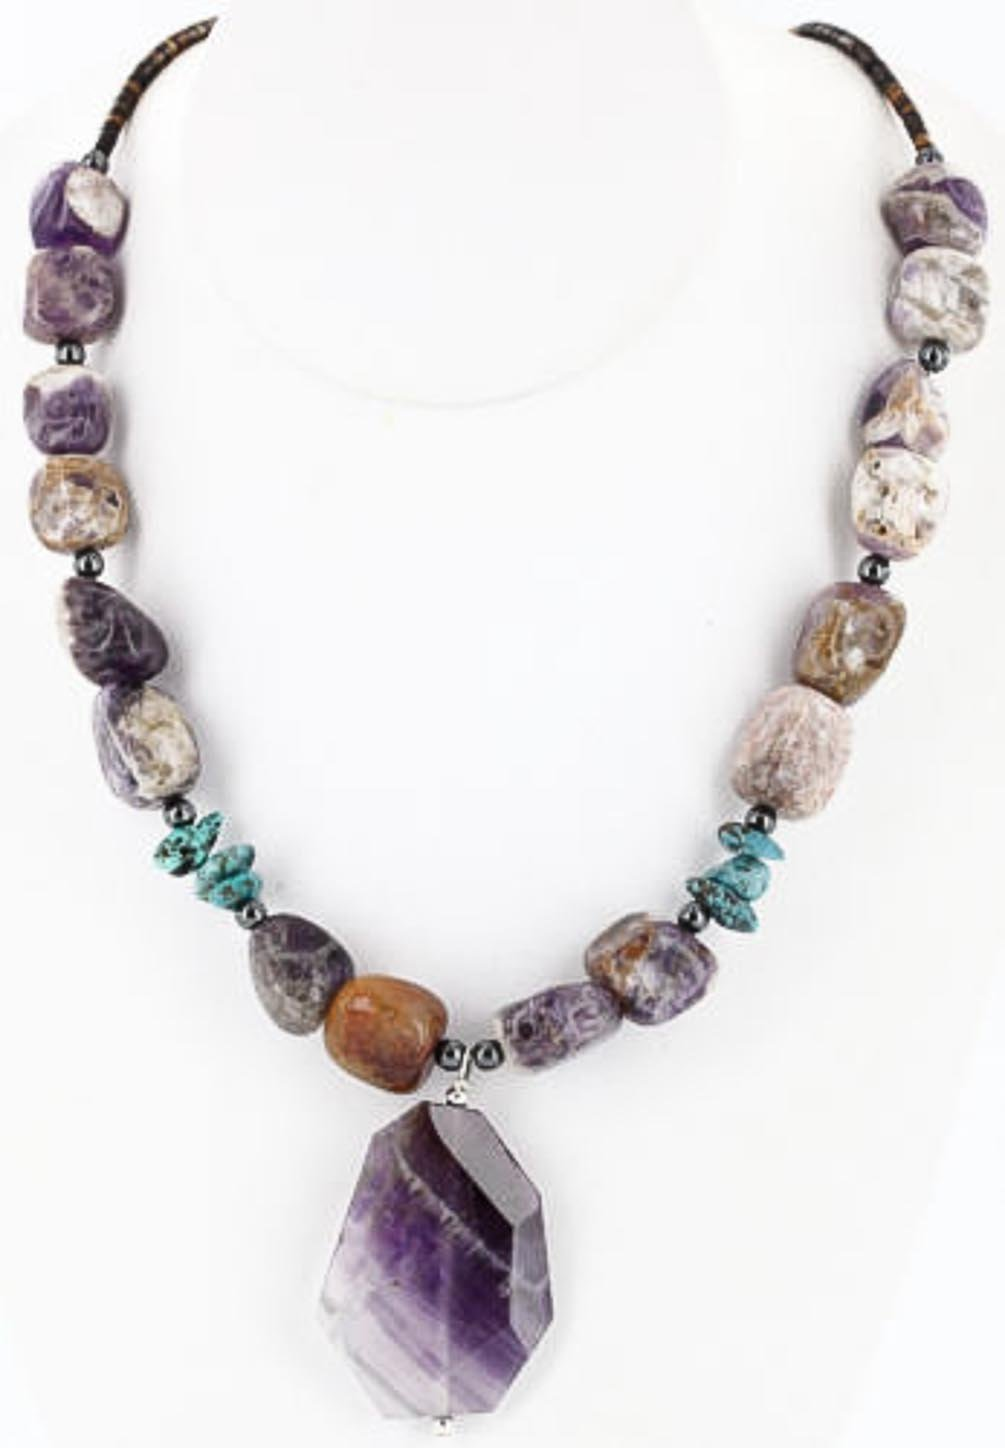 Large $350 Retail Tag Authentic Silver Navajo Natural Turquoise and Amethyst Native American Necklace